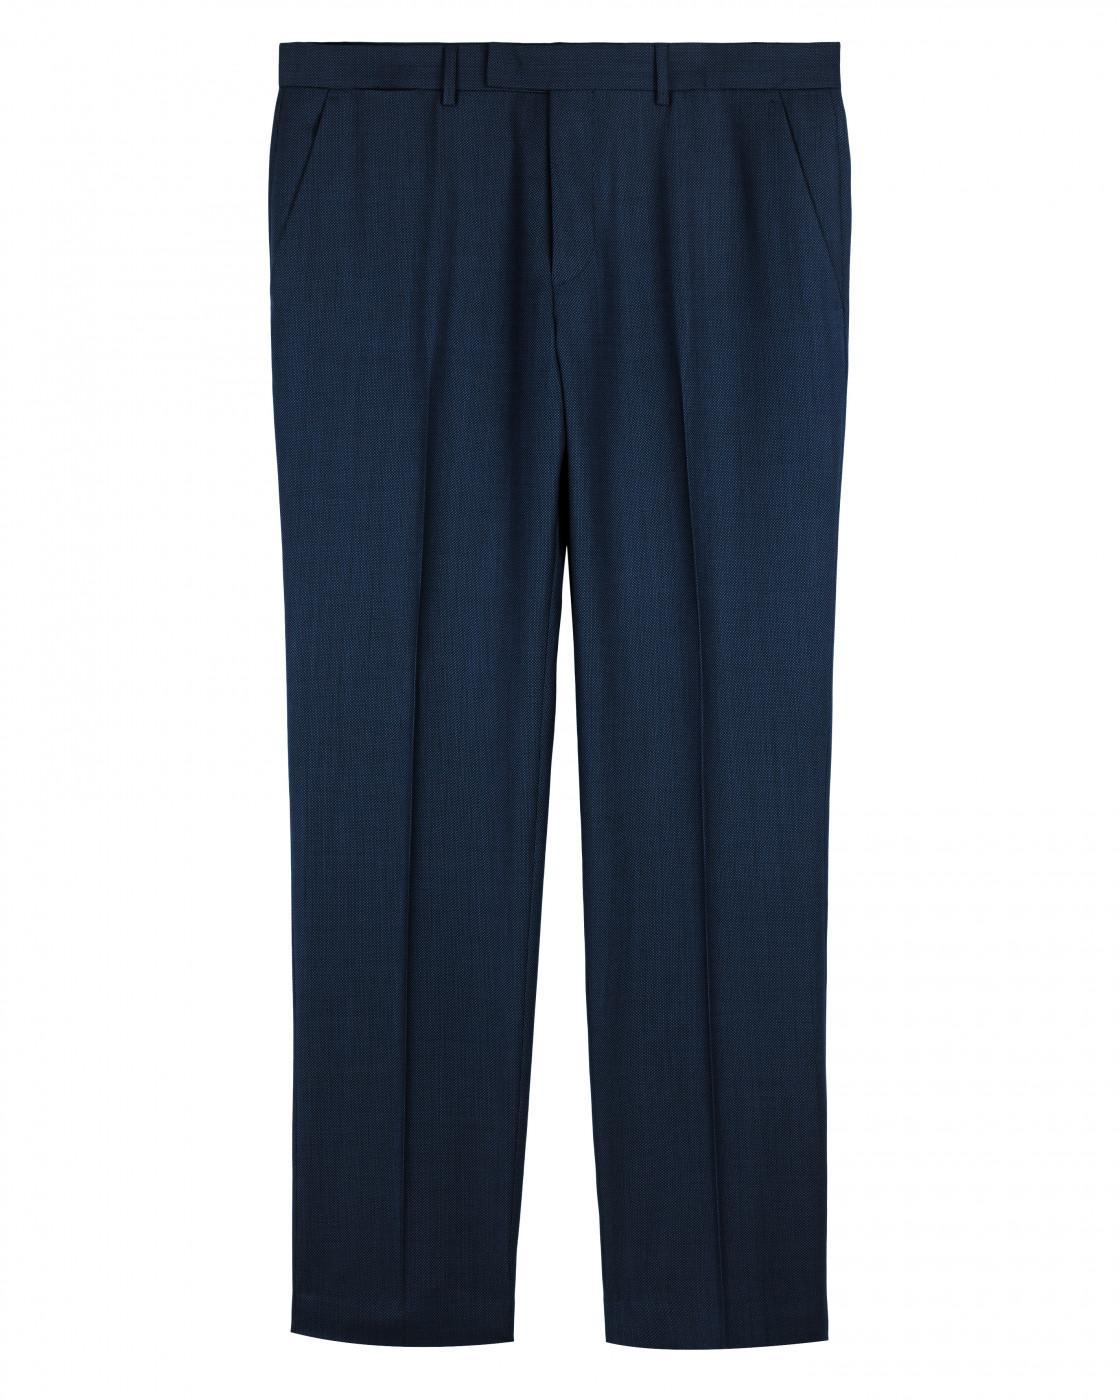 Tailored Birdseye Suit Trouser By Austin Reed Thread